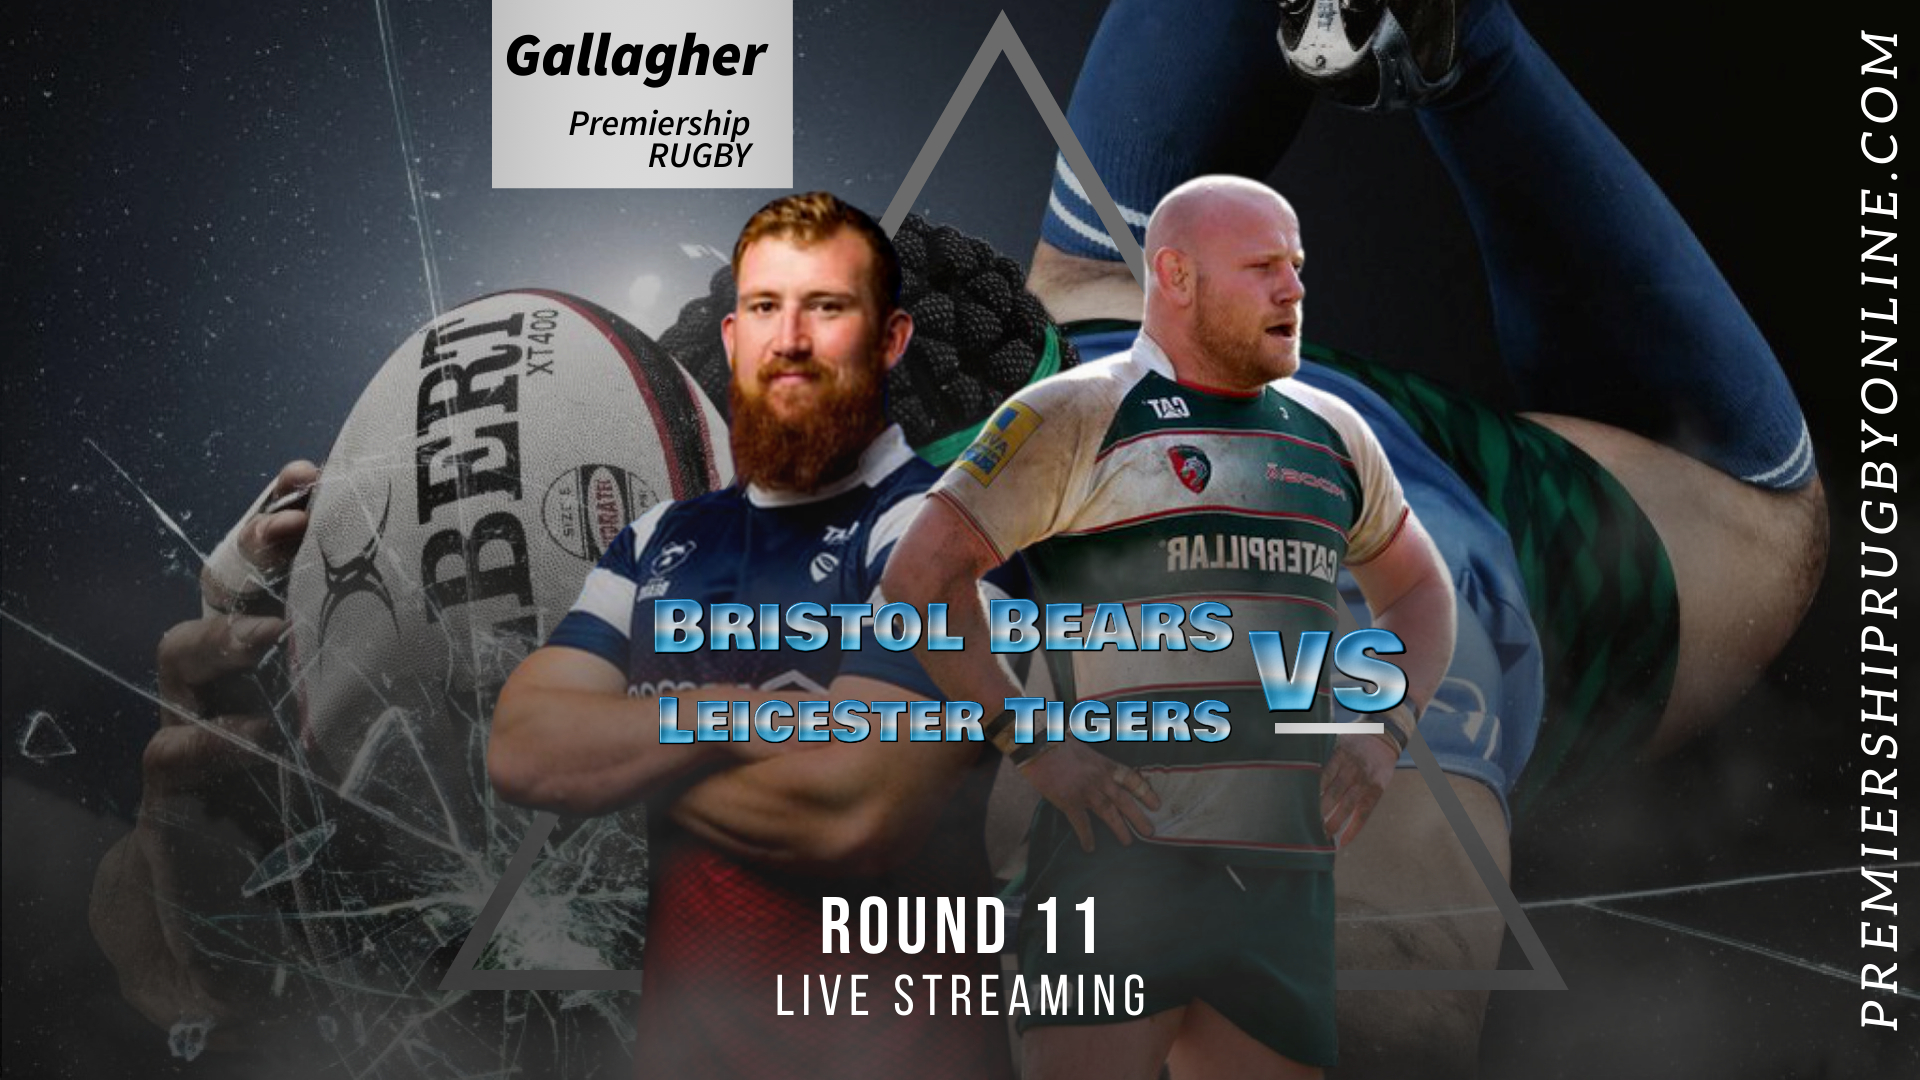 Bristol Bears Vs Leicester Tigers Live Stream 2020-21 | Premiership Rugby Round 11 slider